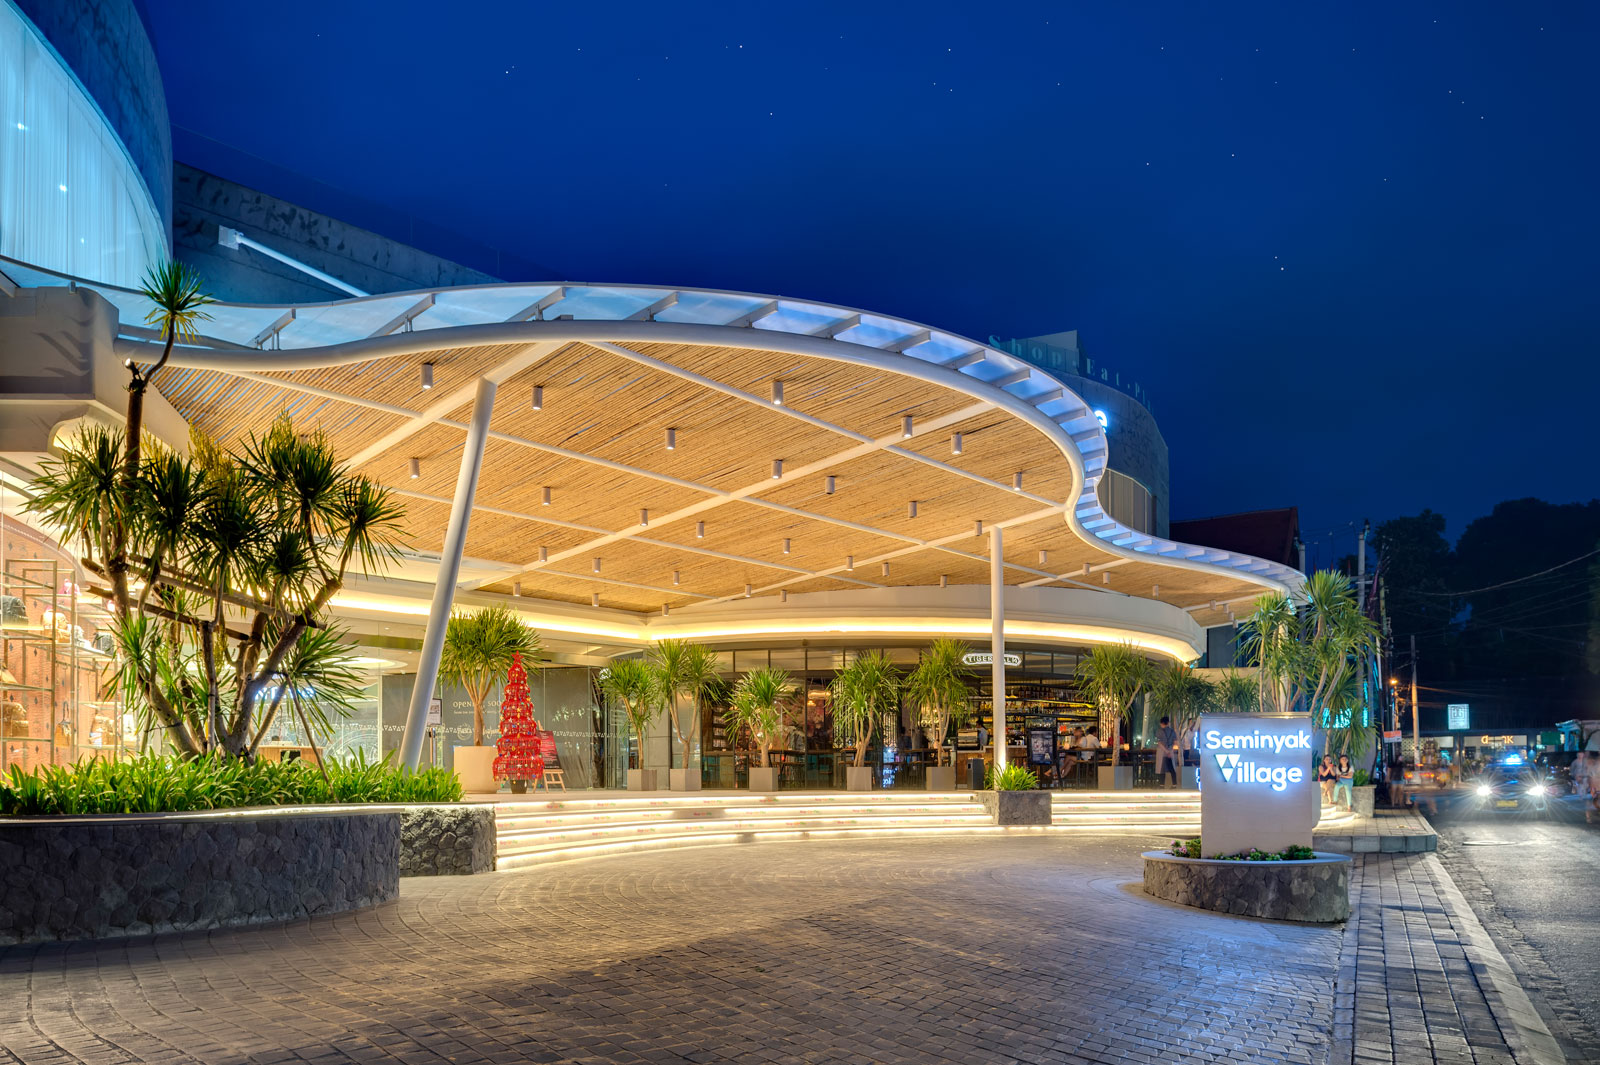 The Brand New Iconic Seminyak Village Shopping Mall In Bali